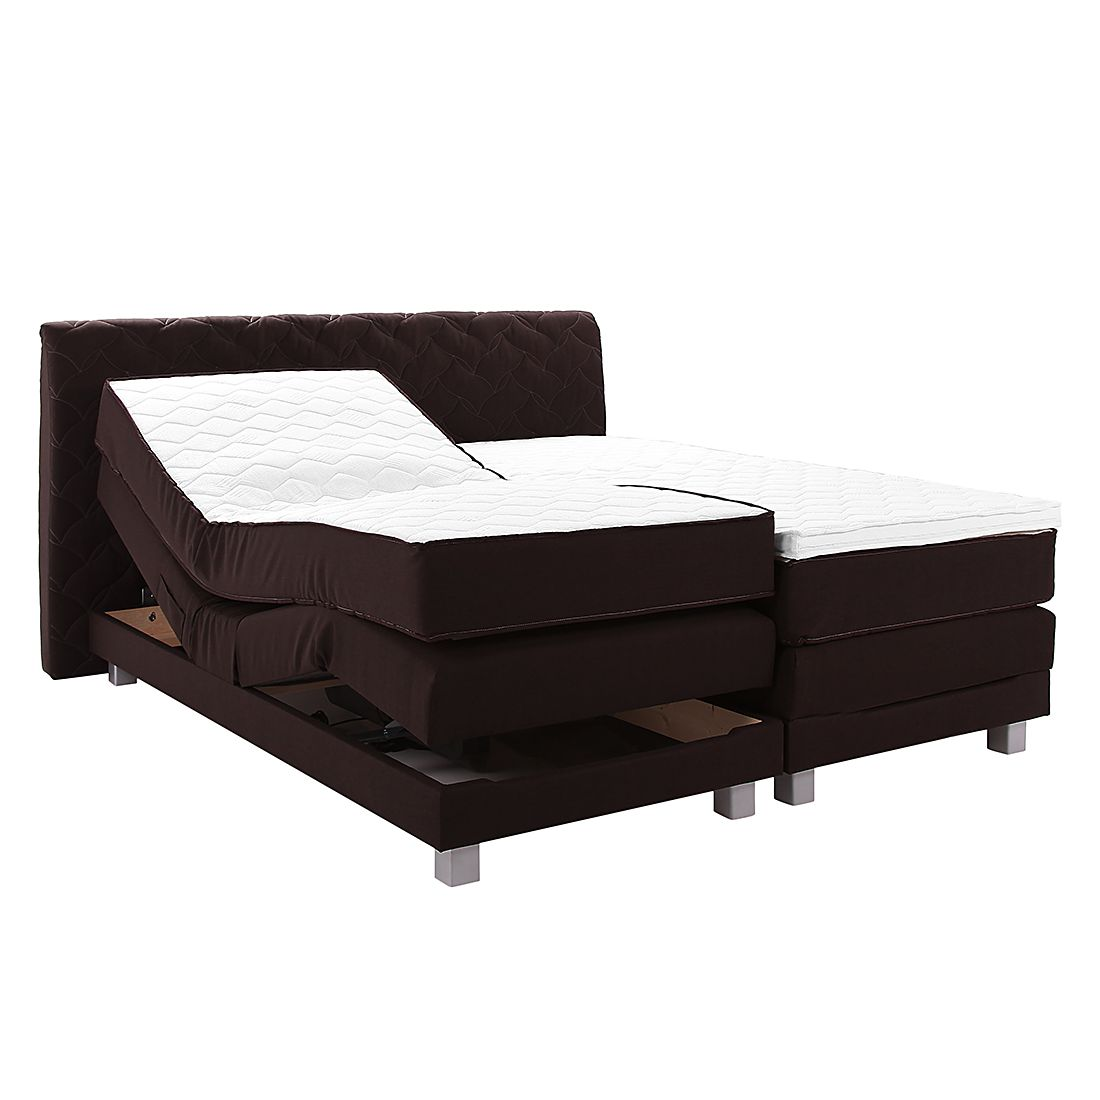 boxspringbett yannis mit elektromotor inklusive topper 160 x 200cm h2 bis 80 kg nova. Black Bedroom Furniture Sets. Home Design Ideas